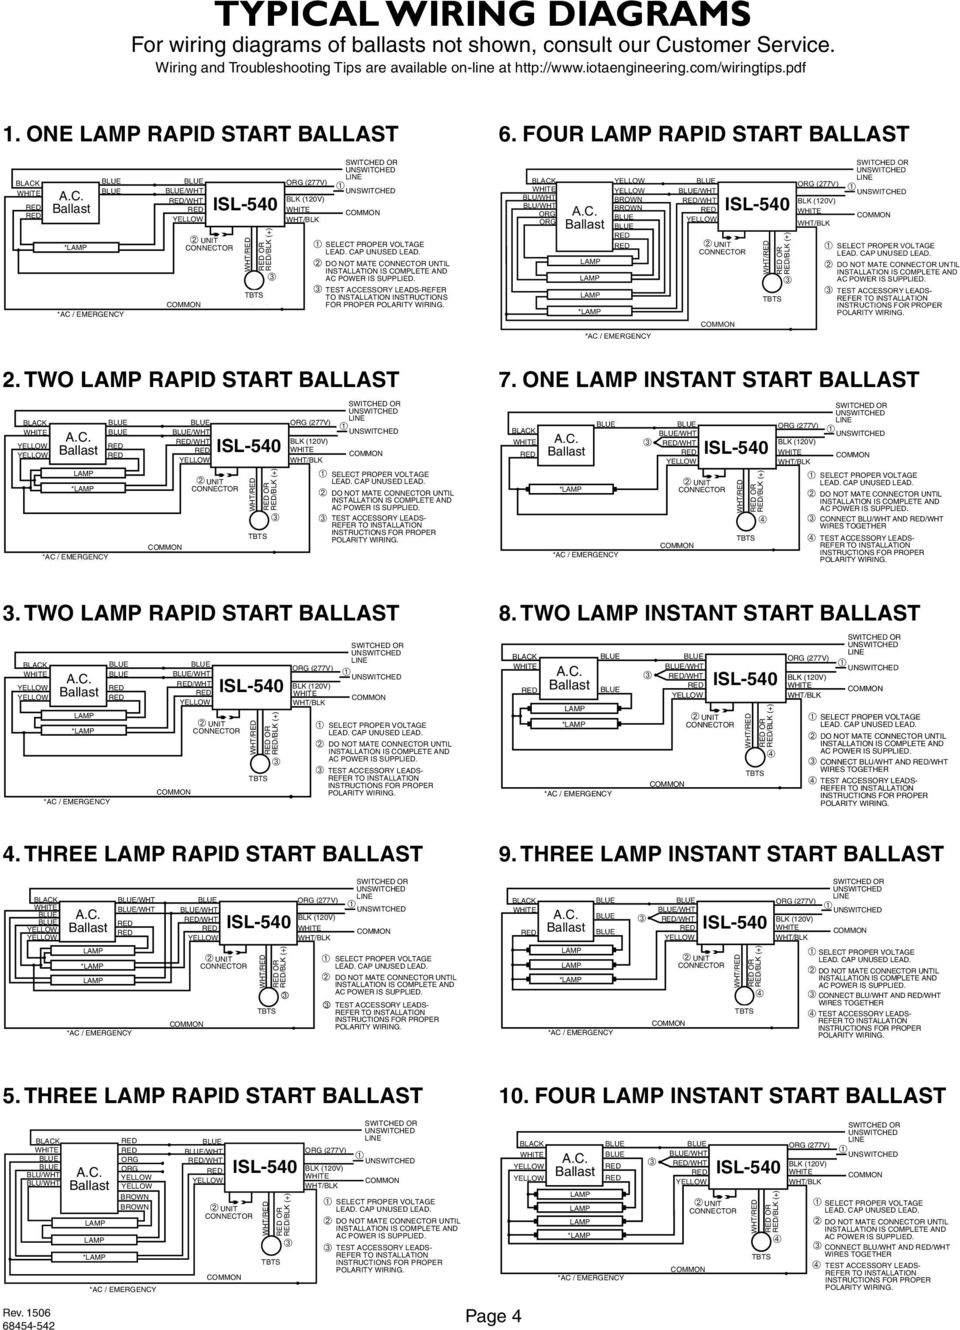 TWO RAPID START * 1LRSB / / DO NOT MATE UNTIL / CHARGE / OR /. 5 TYPICAL WIRING  DIAGRAMS ...